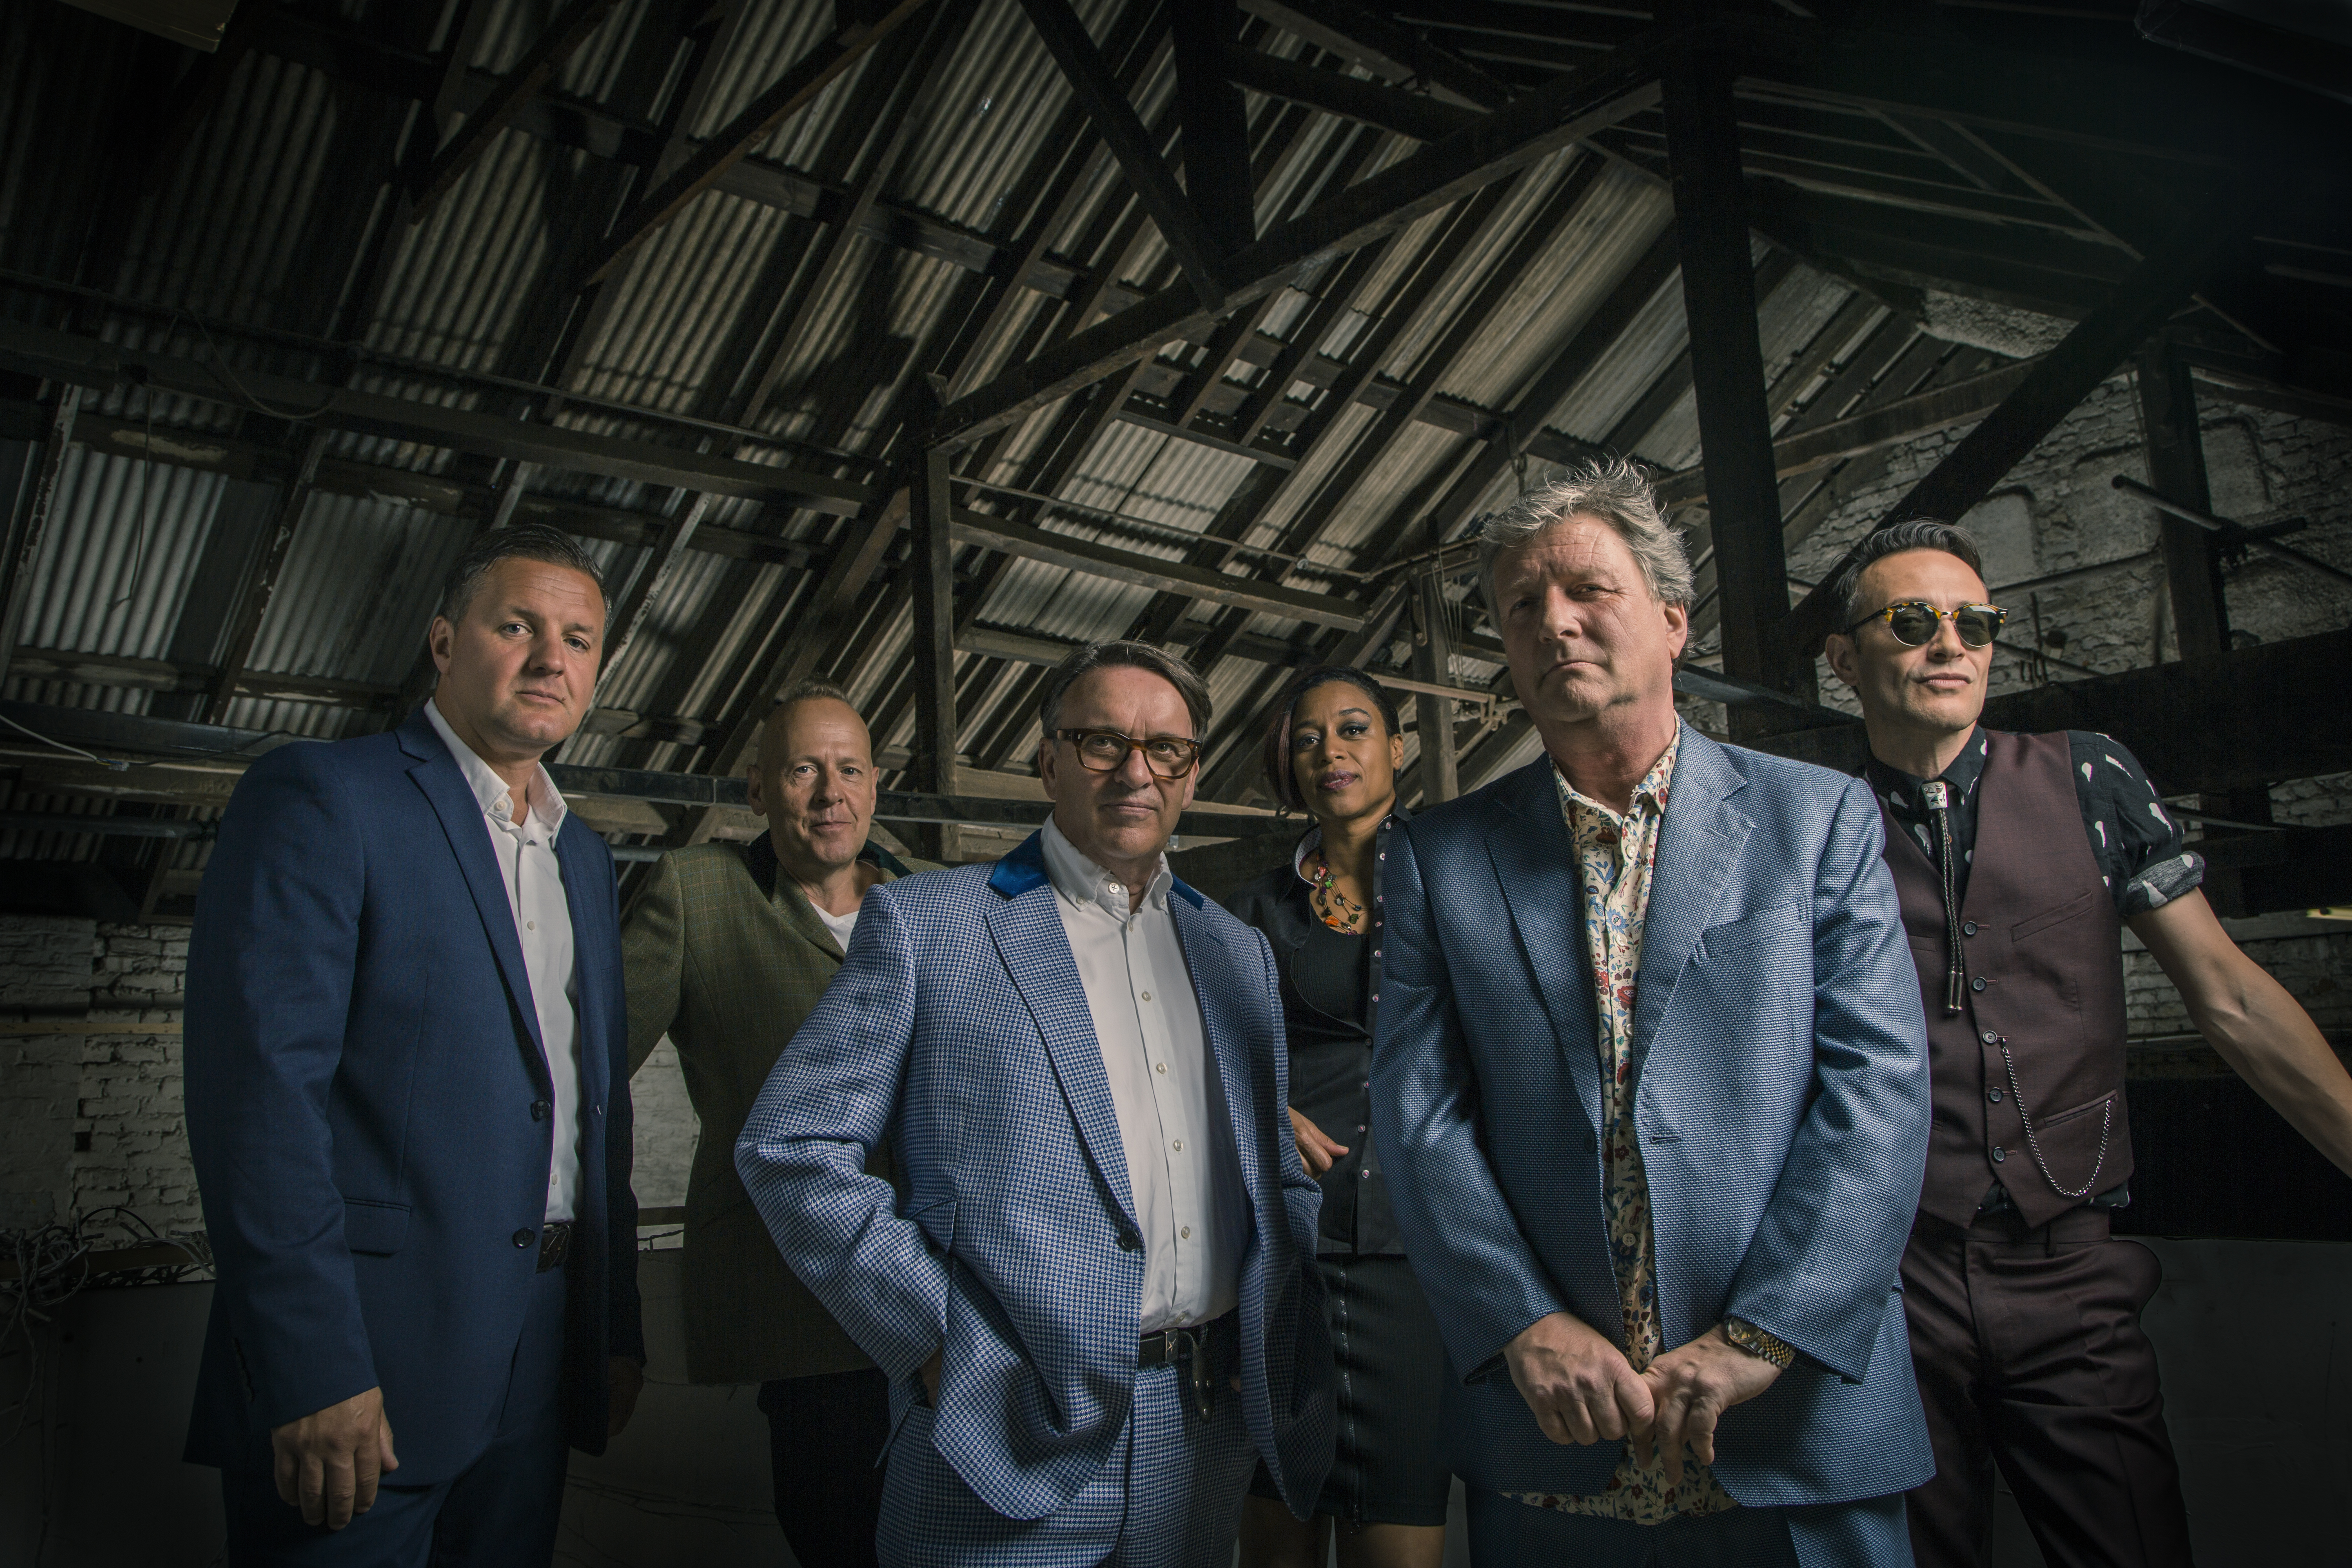 Members of the band Squeeze, five male, one female